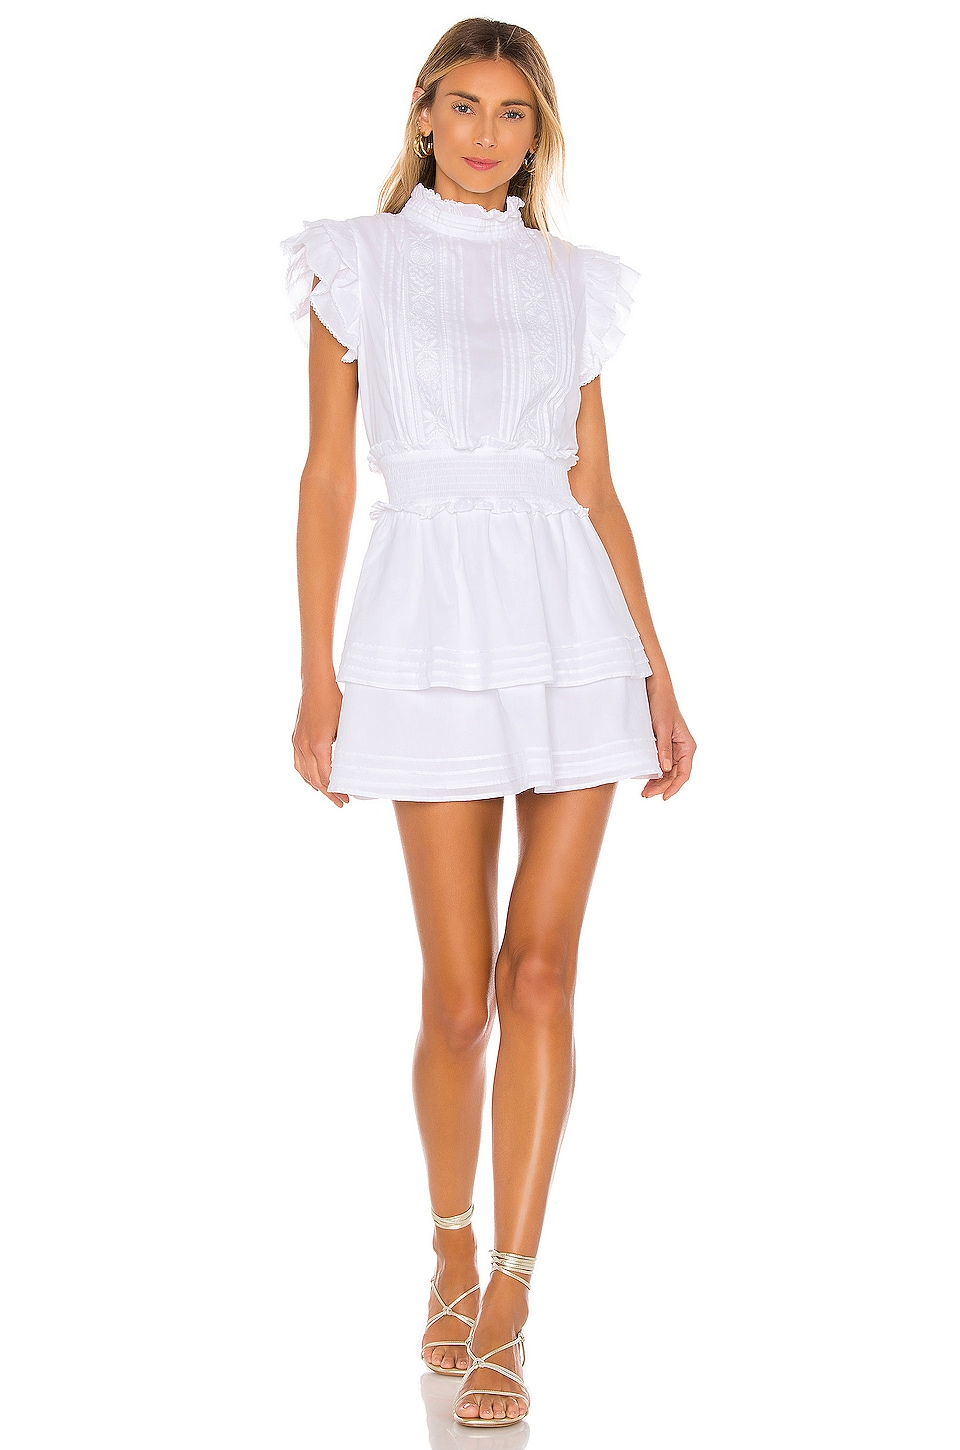 Versailles Mini Dress             Cleobella                                                                                                       CA$ 210.08 5